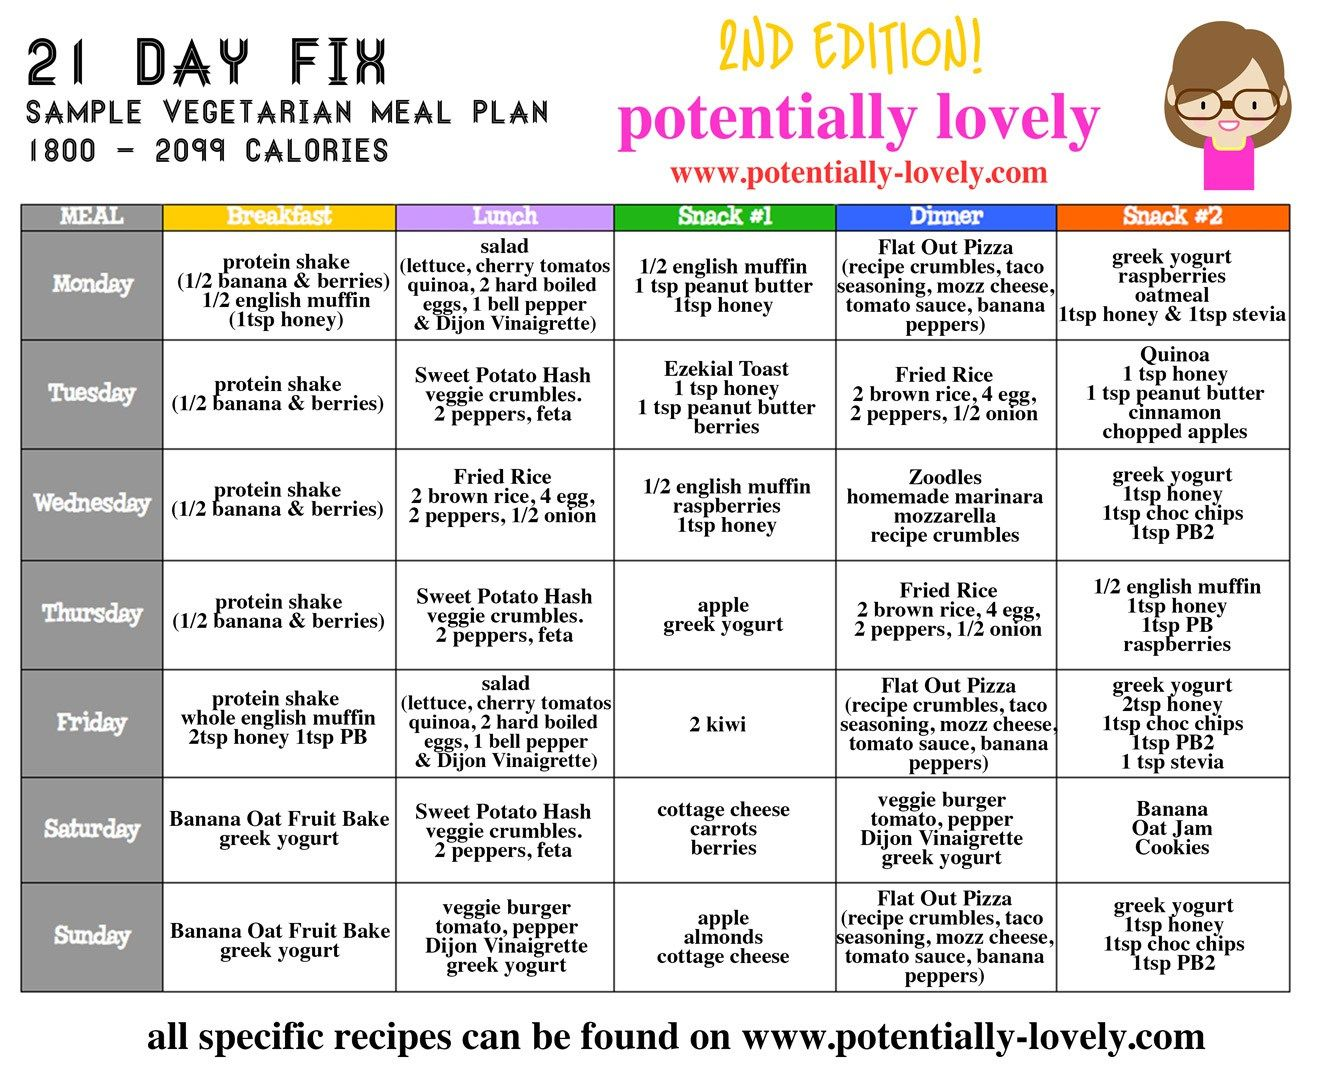 21 Day Fix Weekly Vegetarian Meal Plan 2 Jpg 1 320 1 080 Pixels 21 Day Fix Vegetarian 21 Day Fix Meals Vegetarian Meal Plan